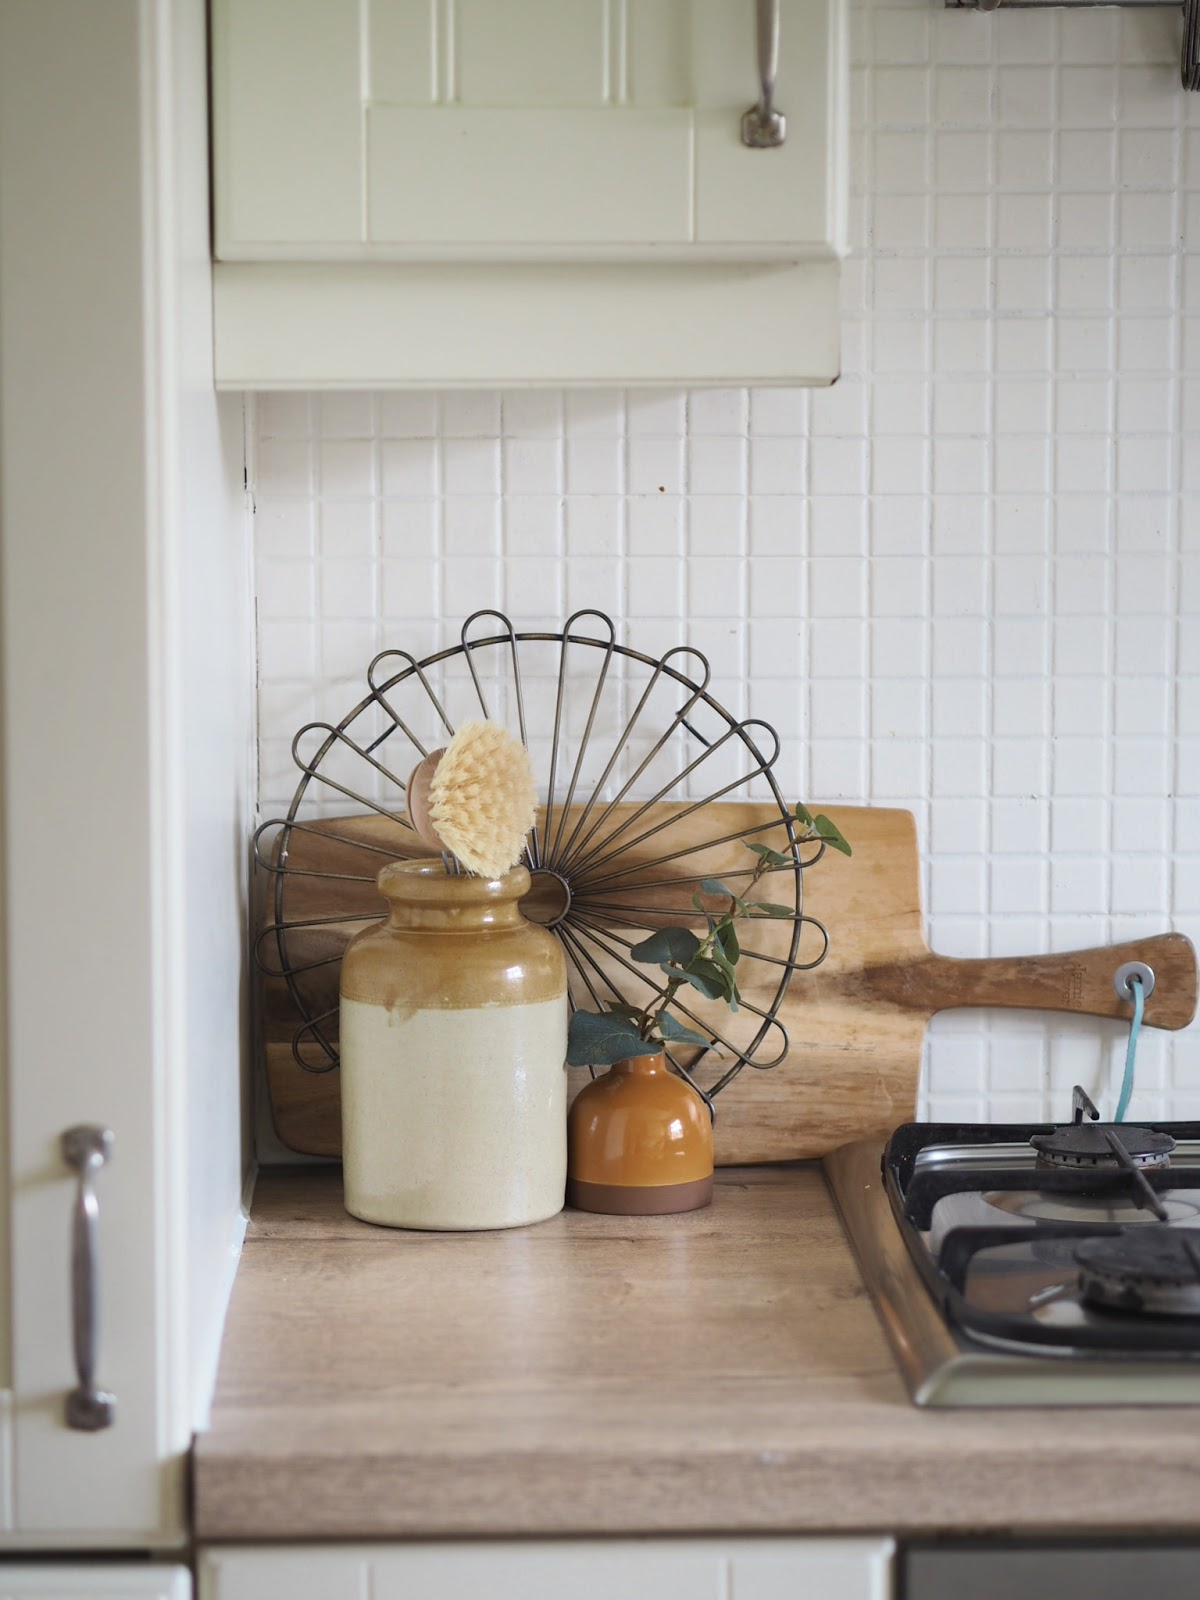 How to paint kitchen or bathroom tiles on a budget. Tips and advice on how to transform a room simply with tile paint, and give a new lease of life to a small kitchen. How to DIY your kitchen and get rid of dark or old fashioned tiles and backsplashes. DIY advice with this major project.